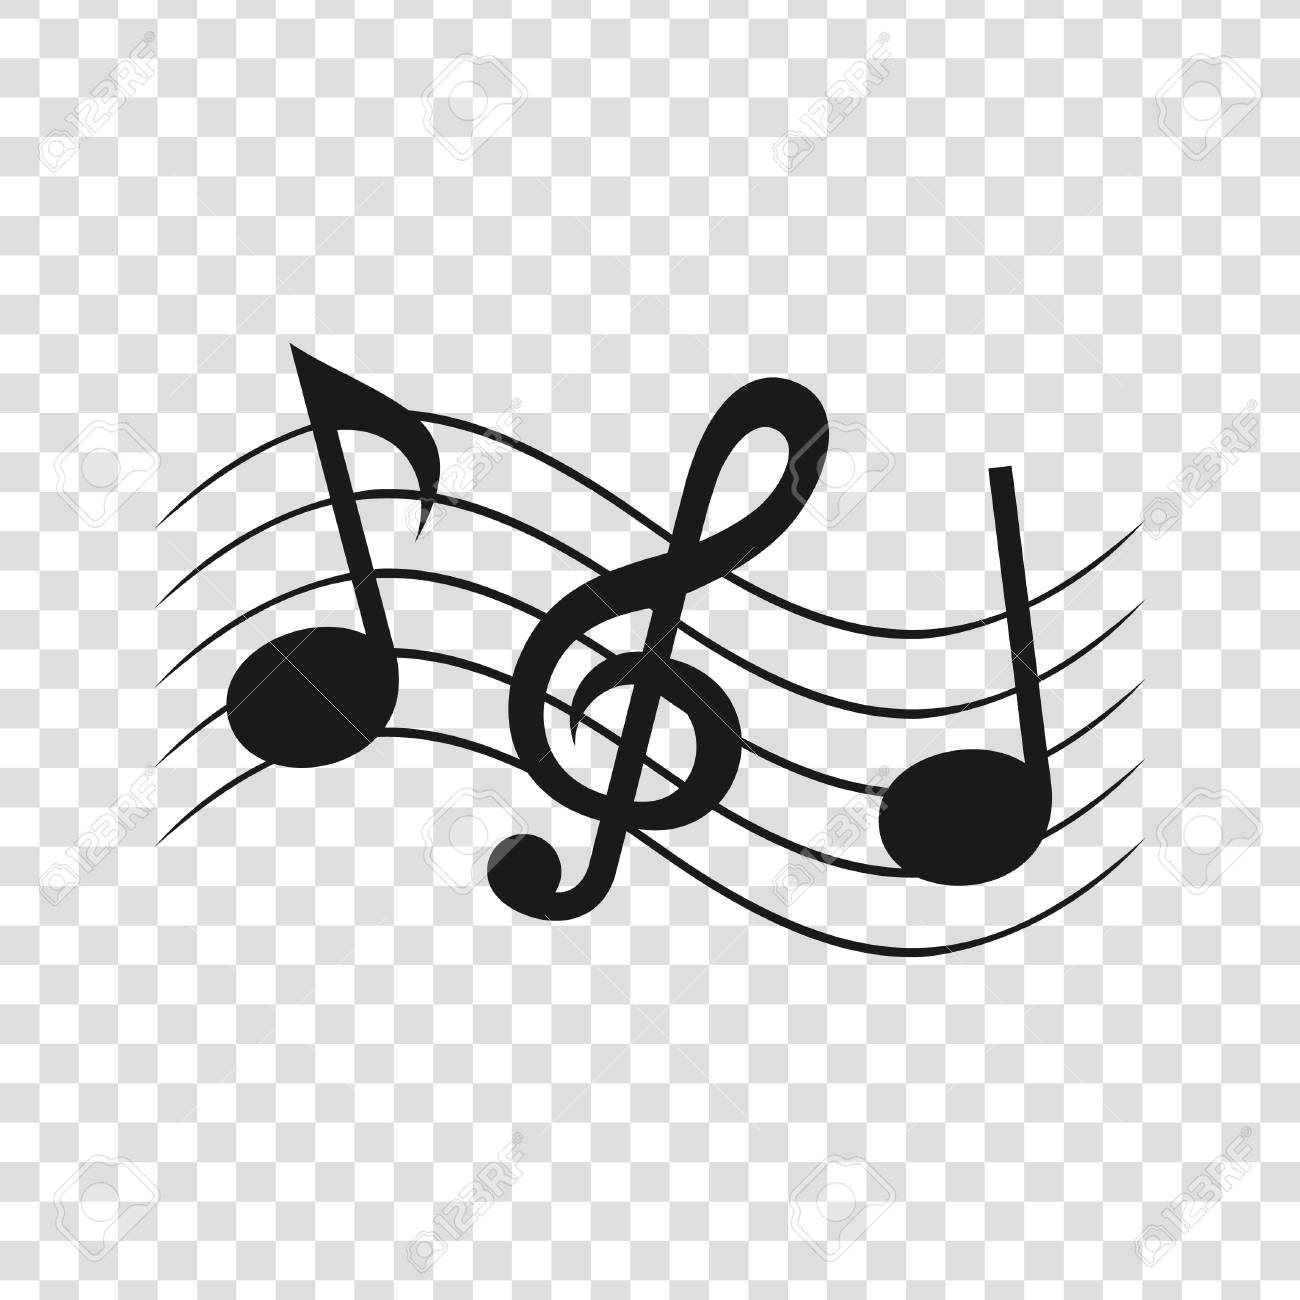 Musical notes on a transparent background. Vector illustration.